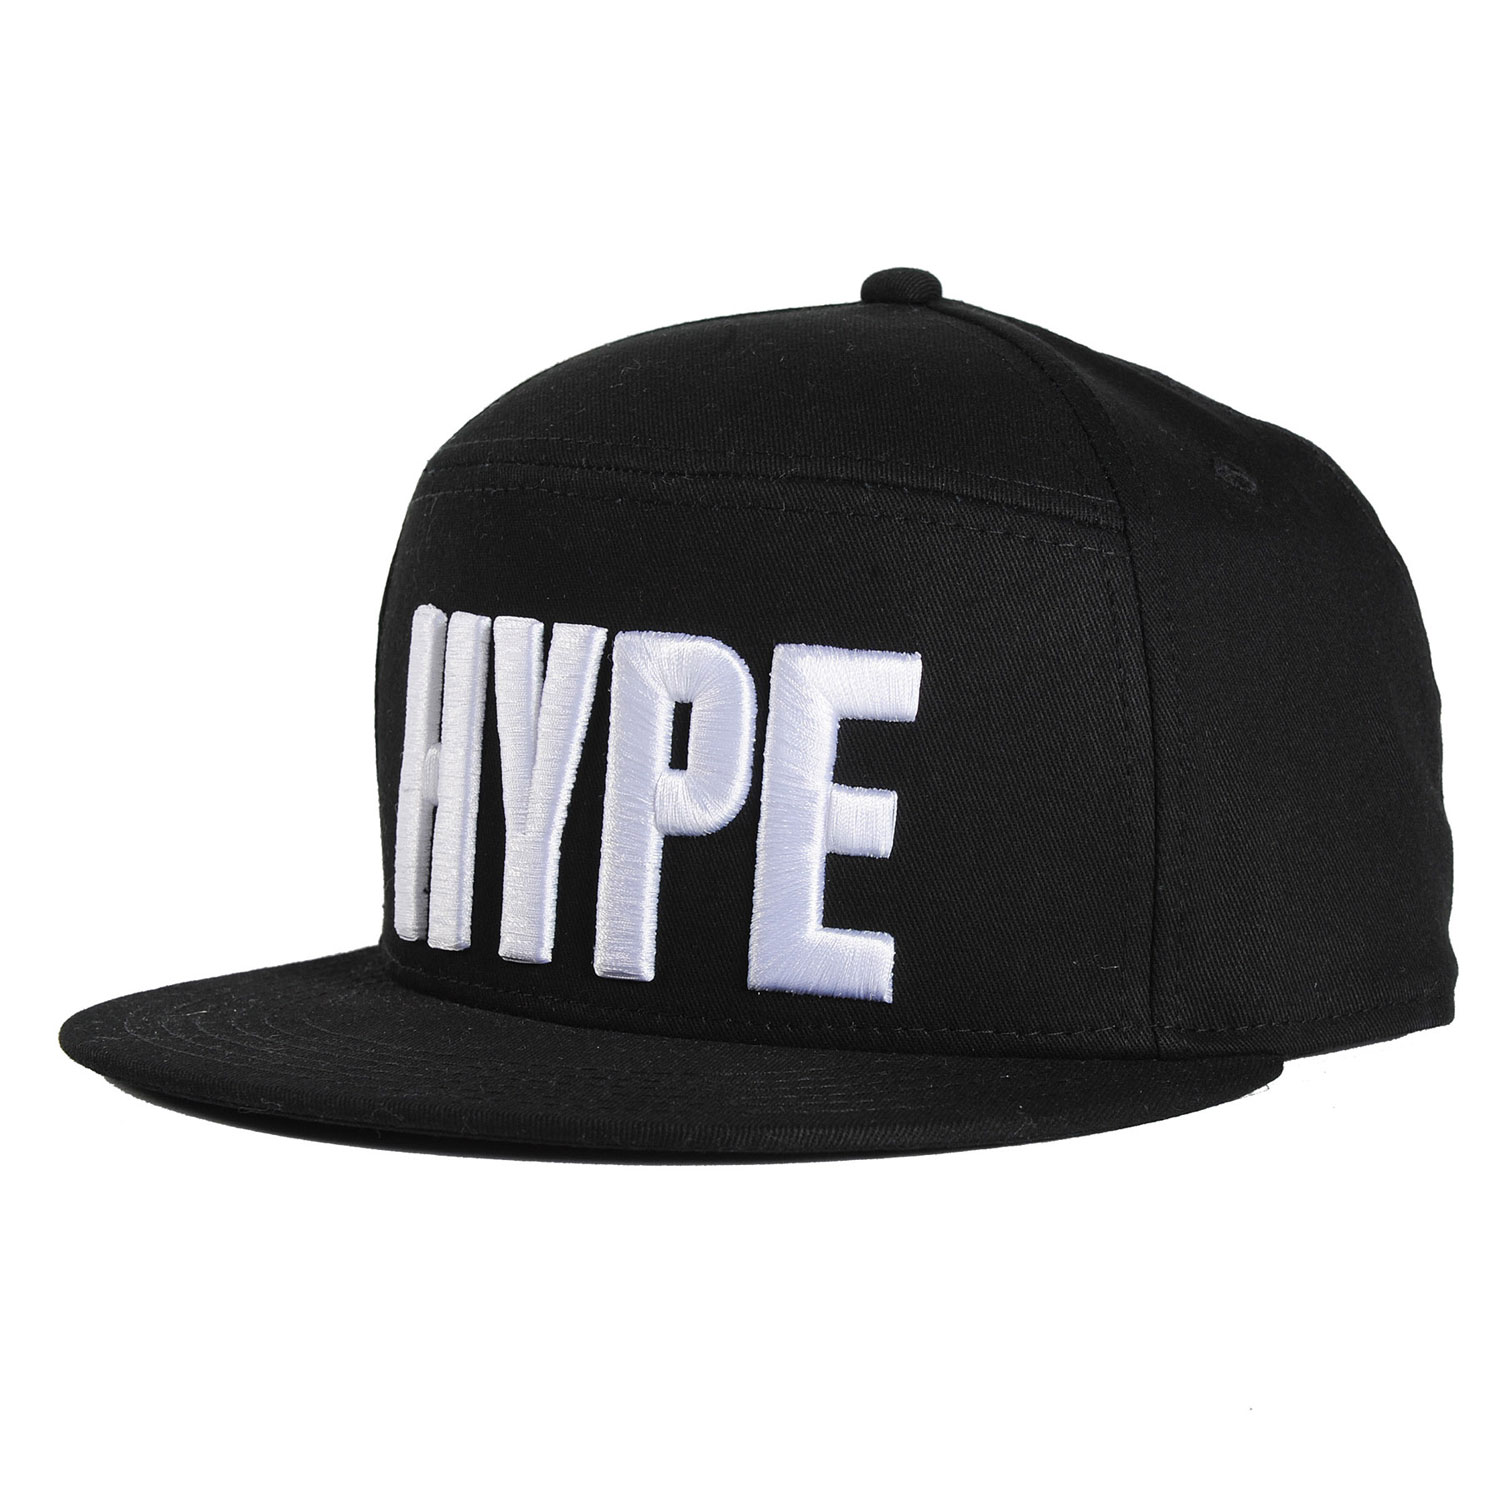 Skateboard Key Features of the Neff Hype Cap: 100% Cotton Twill Adjustable - $22.00